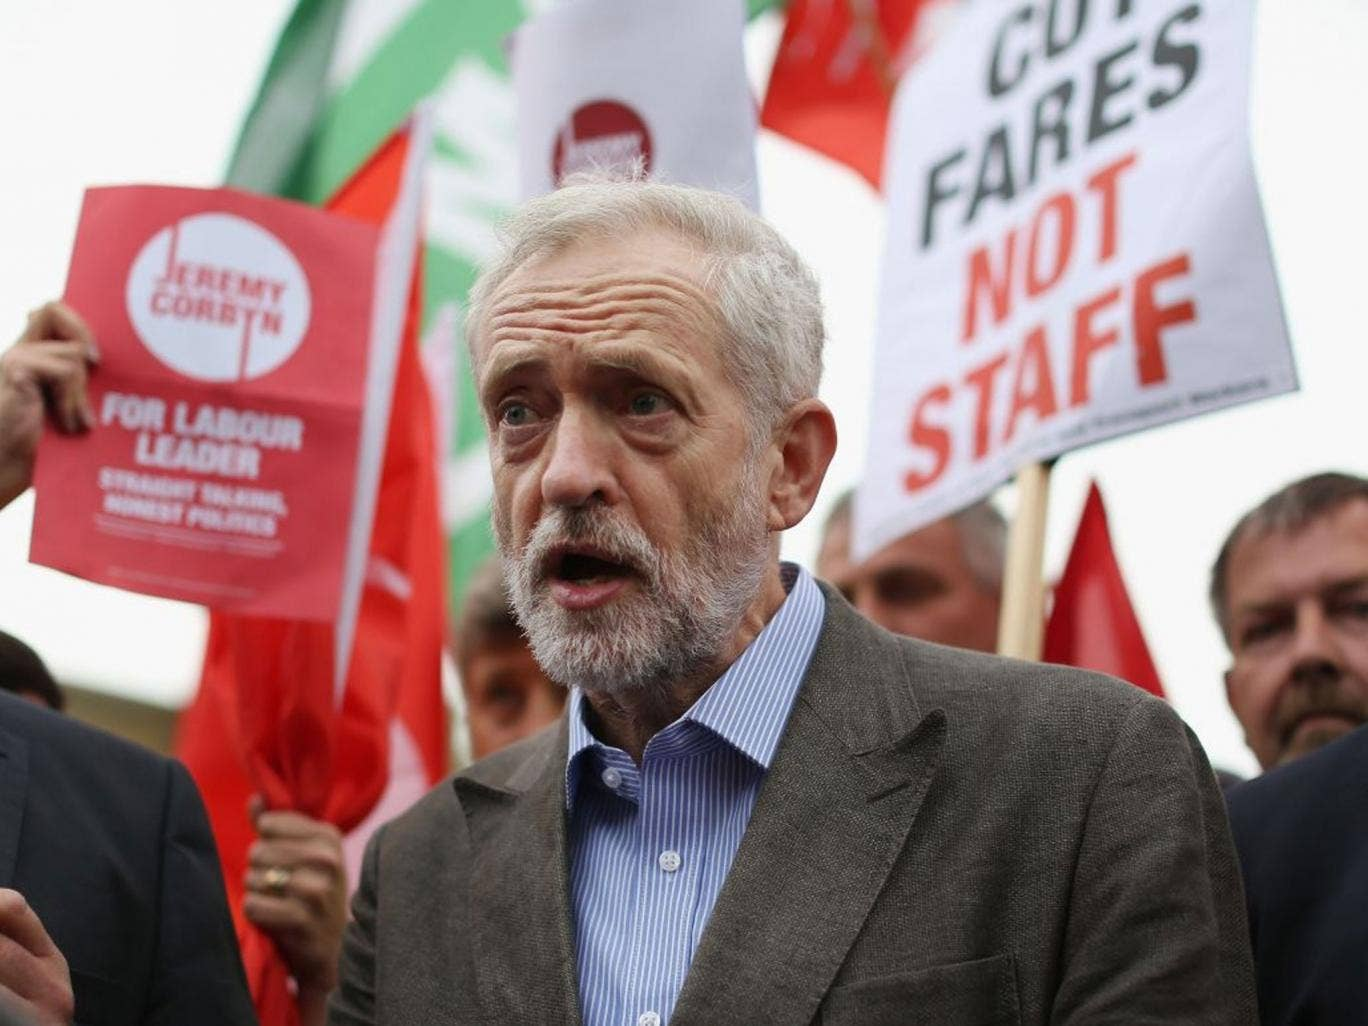 news politics labour leadership race corbyn done deal predicts paddy power pays bets